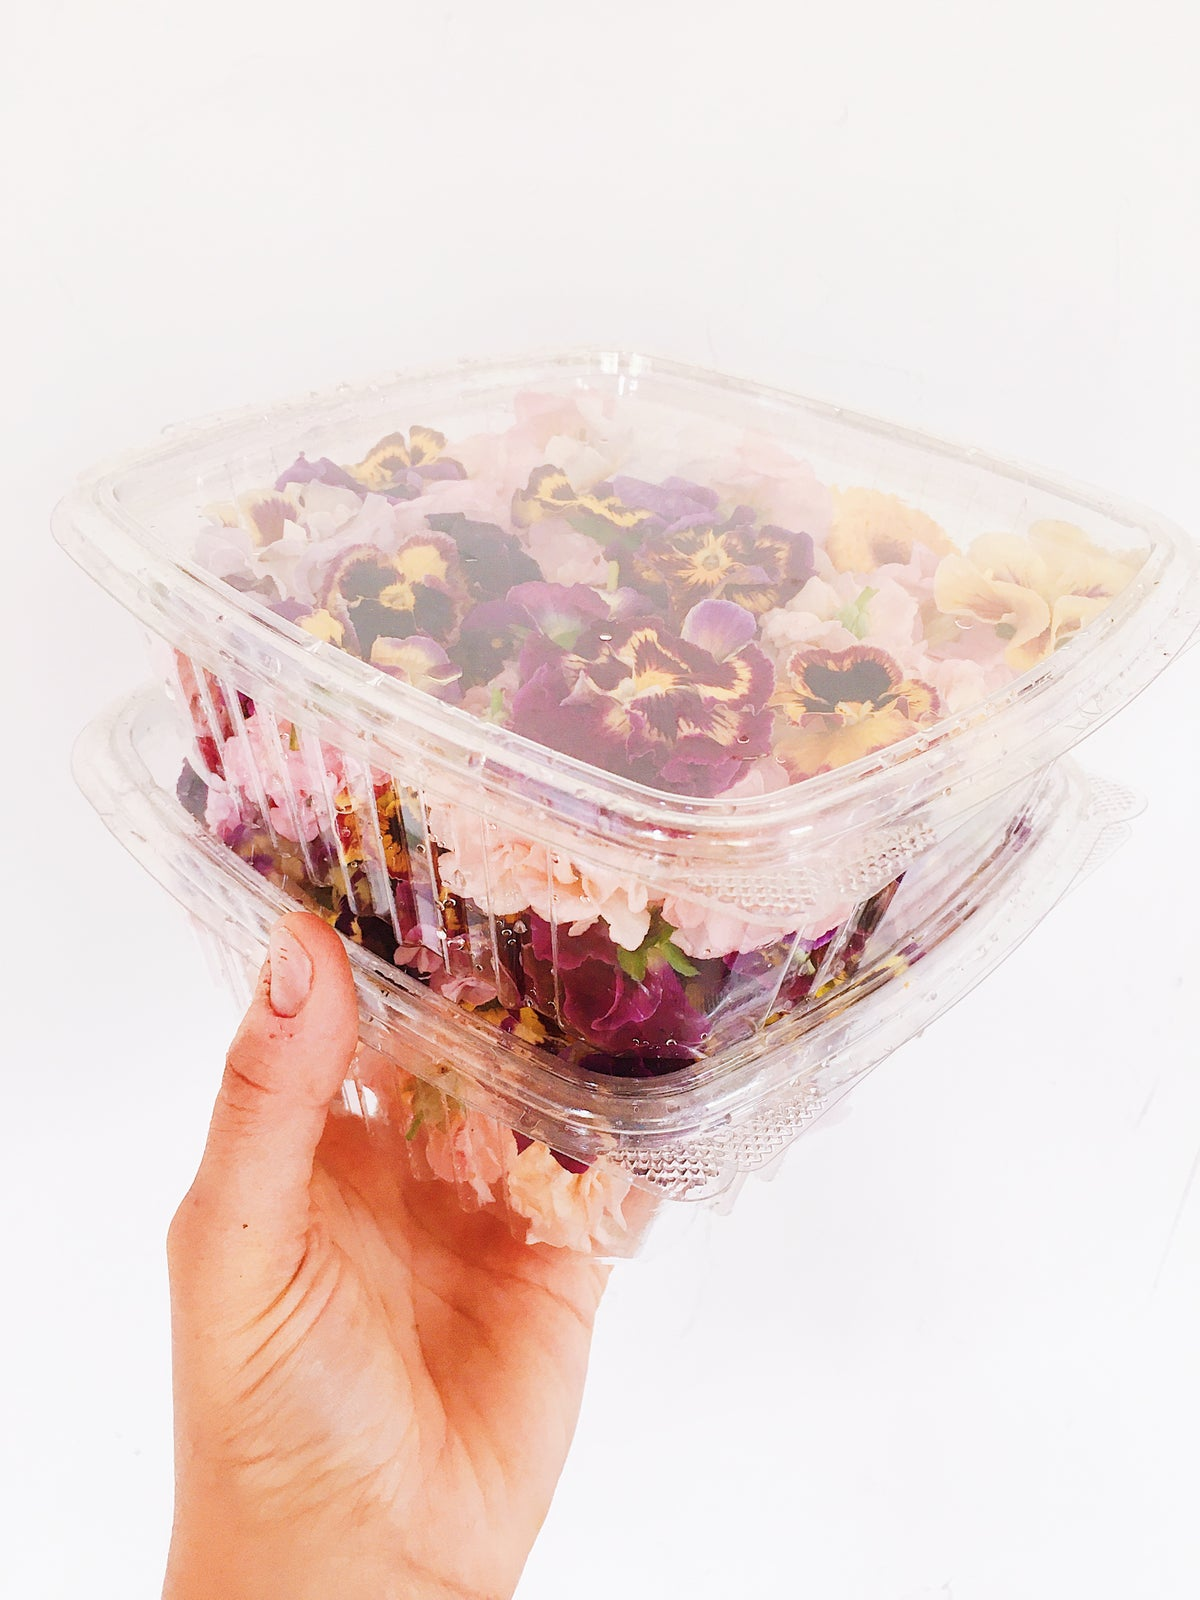 Image of Fresh Edible Flowers - Certified Naturally Grown